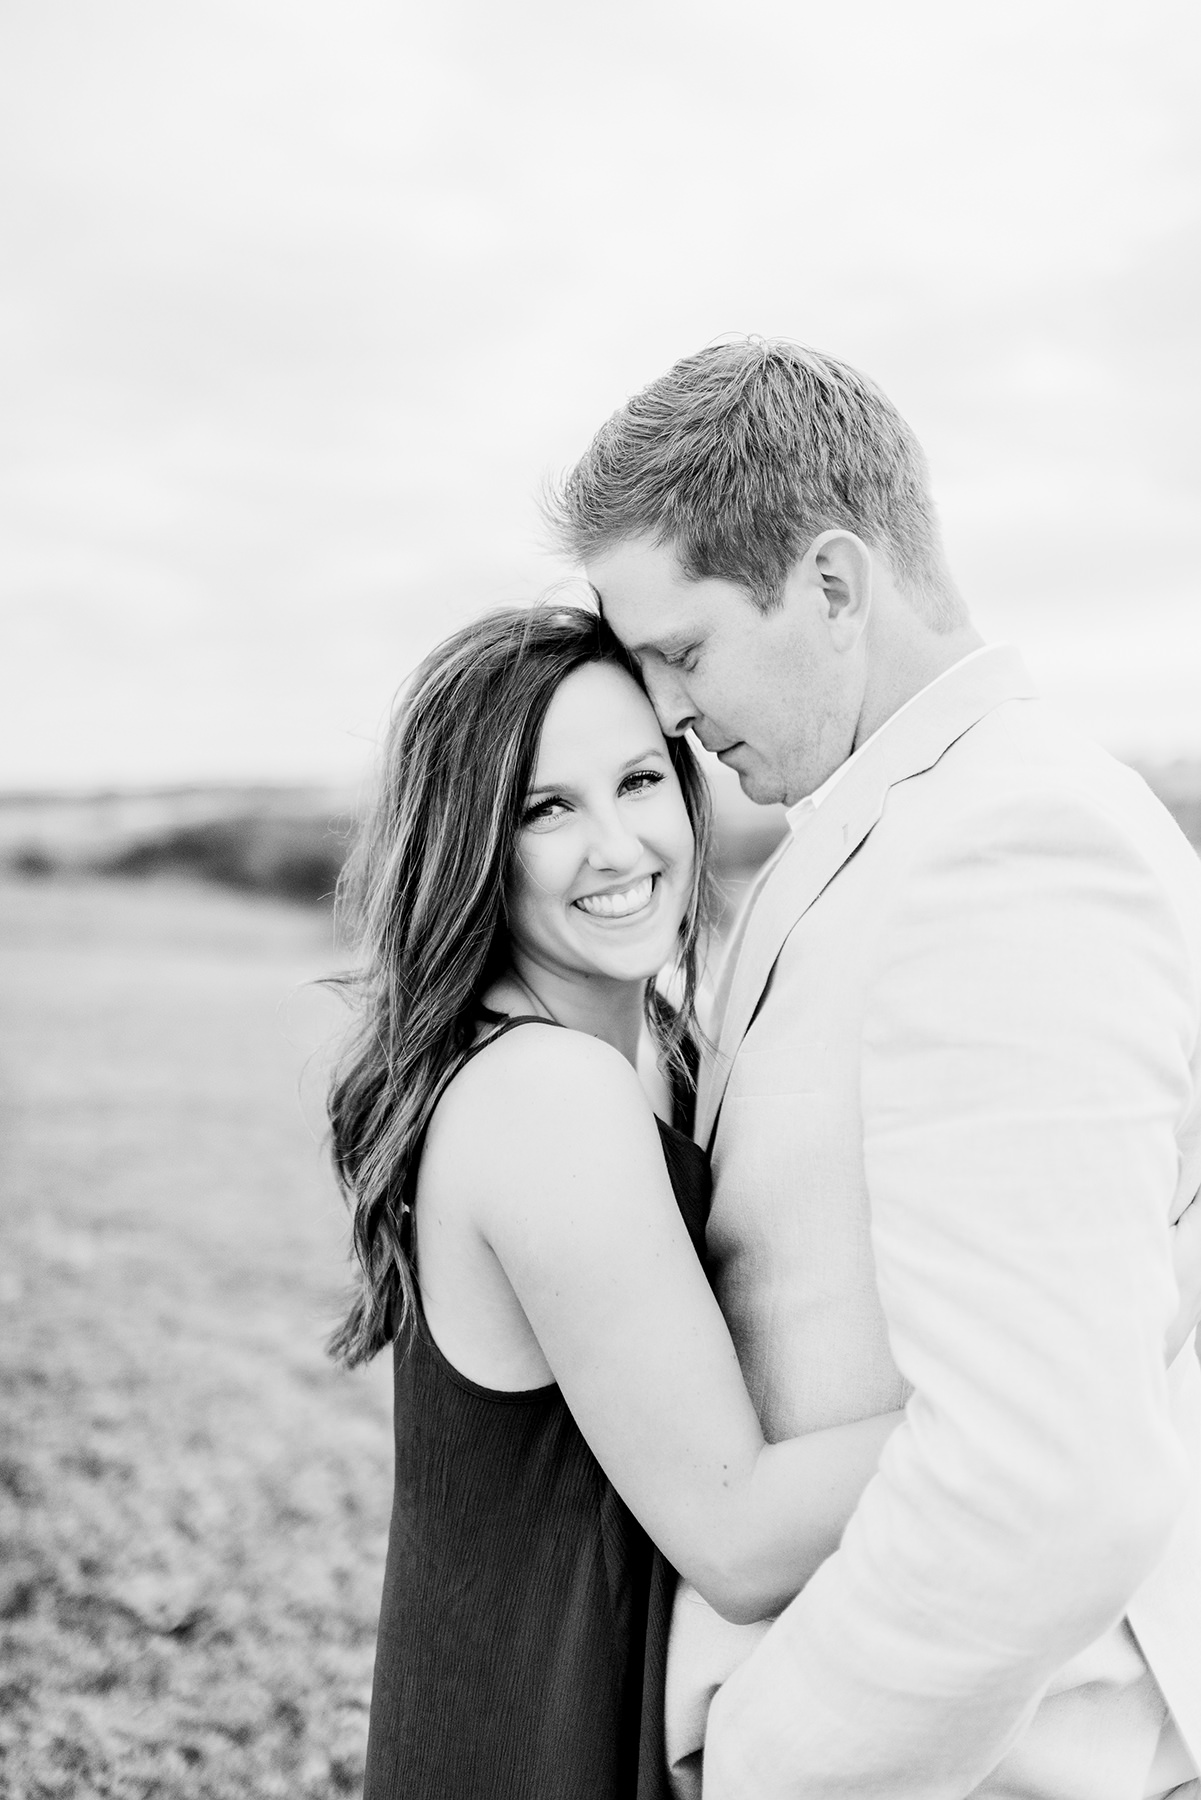 Wisconsin Engagement Photographer - Larissa Marie Photography